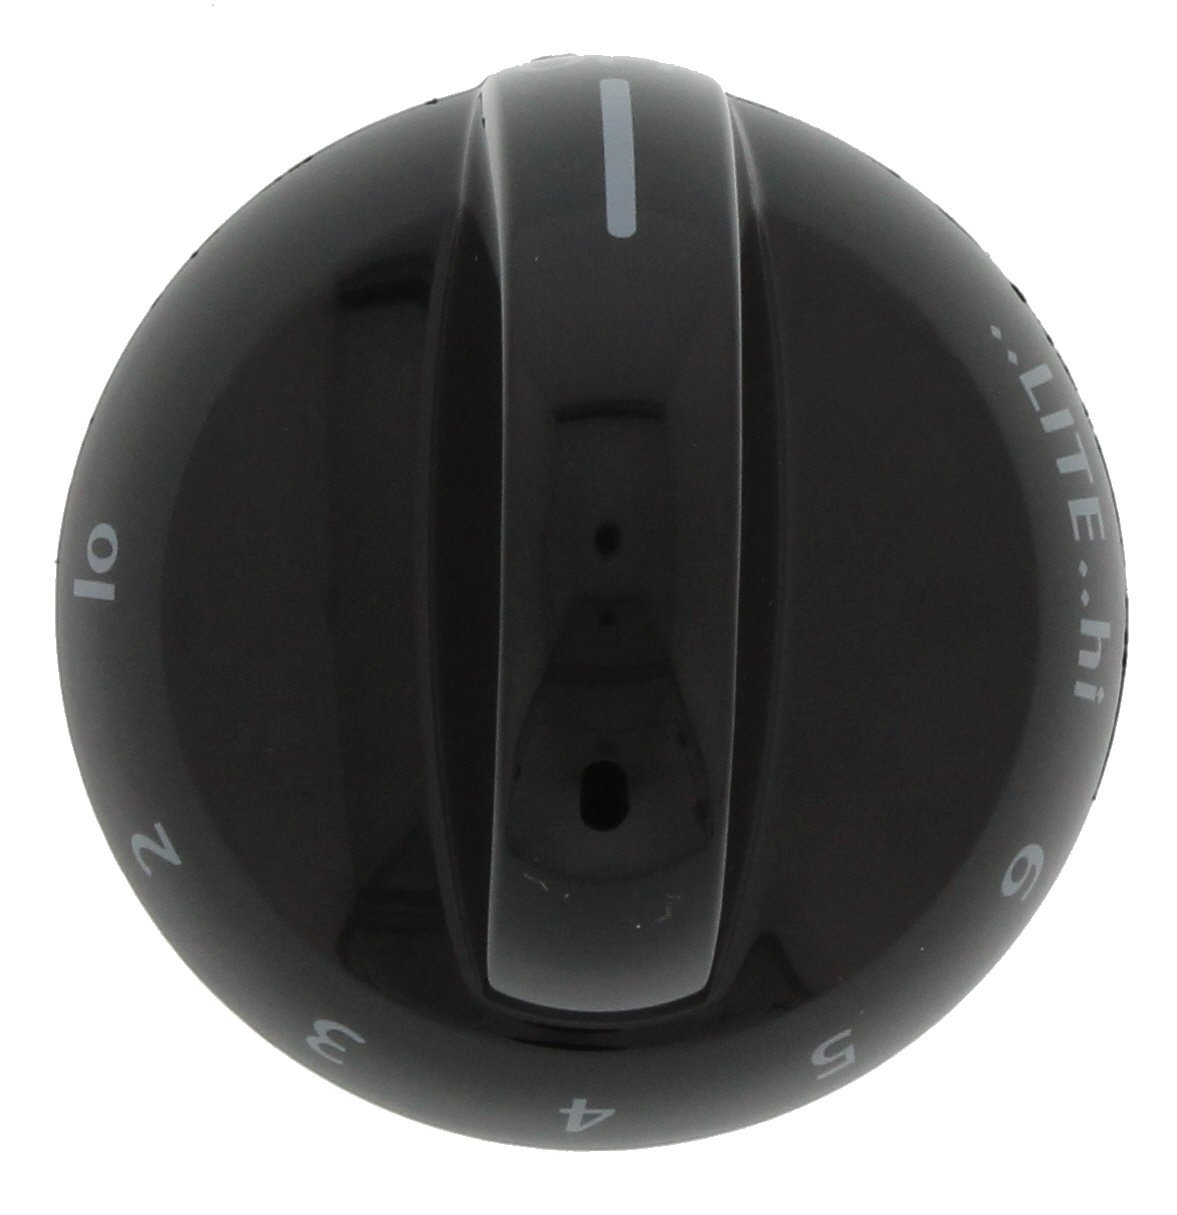 Snap Supply Range Burner Knob For Frigidaire Directly Replaces 316220009